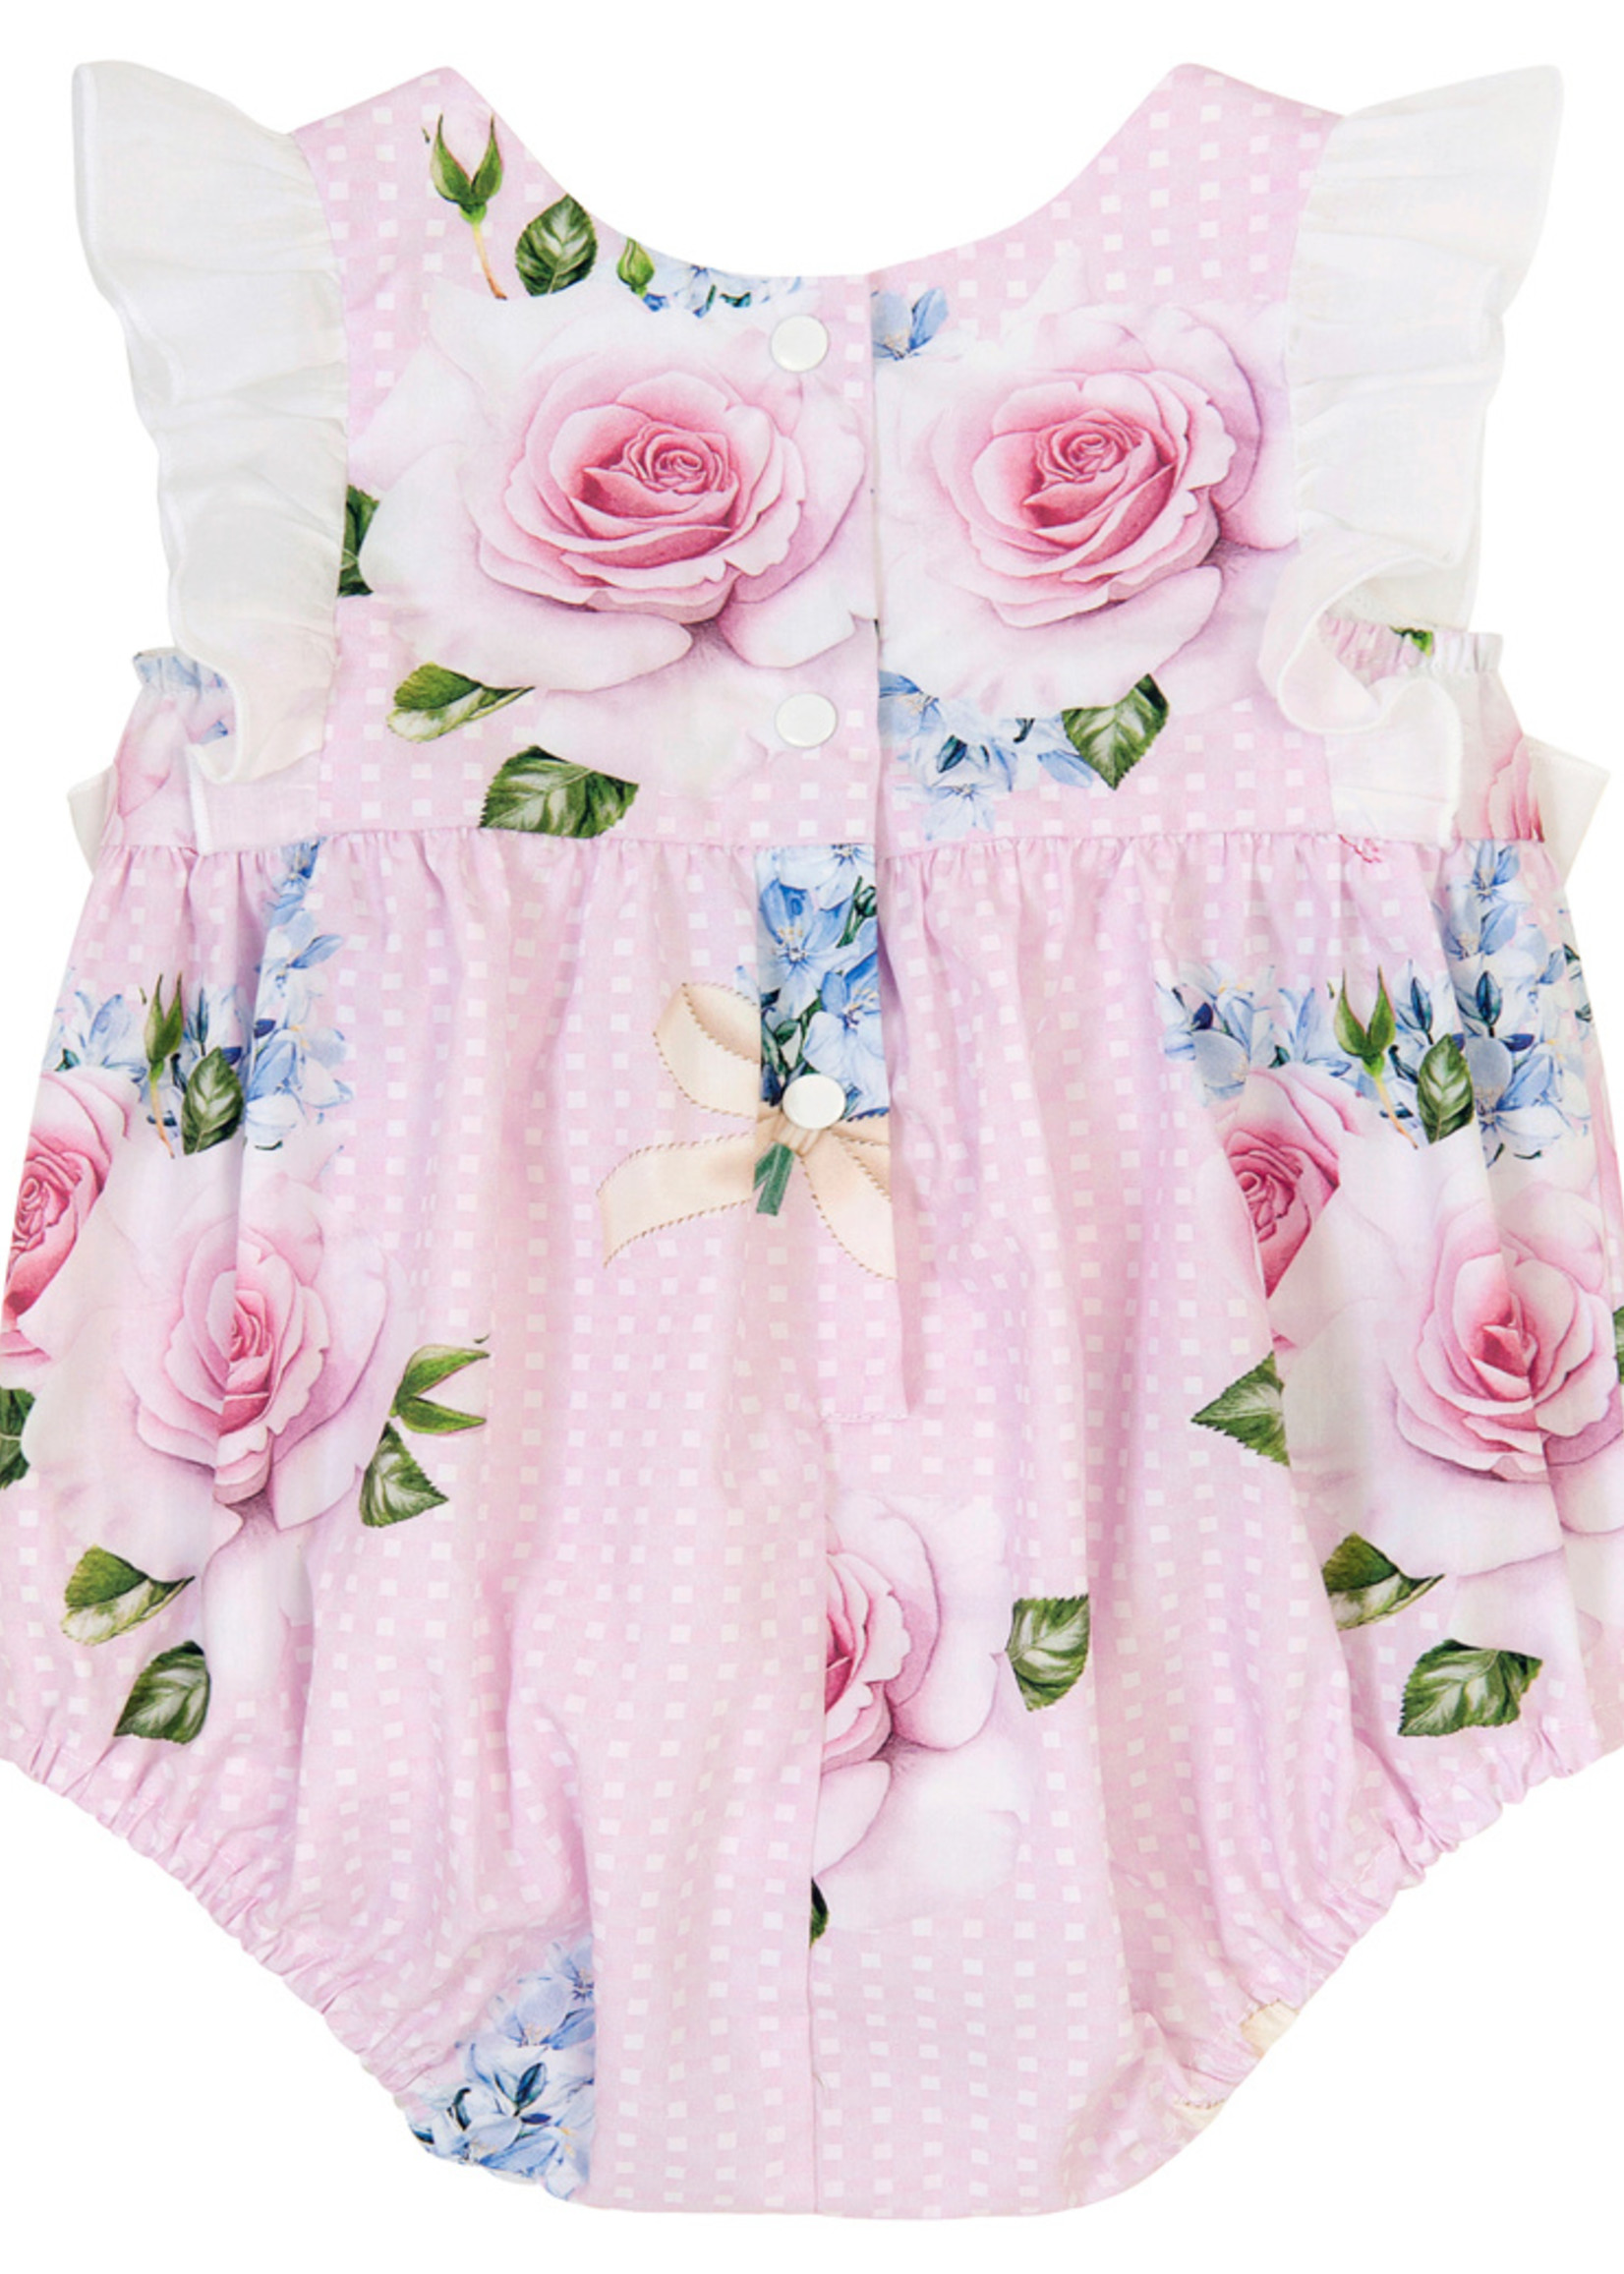 Balloon Chic Balloon Chic pink overall 919